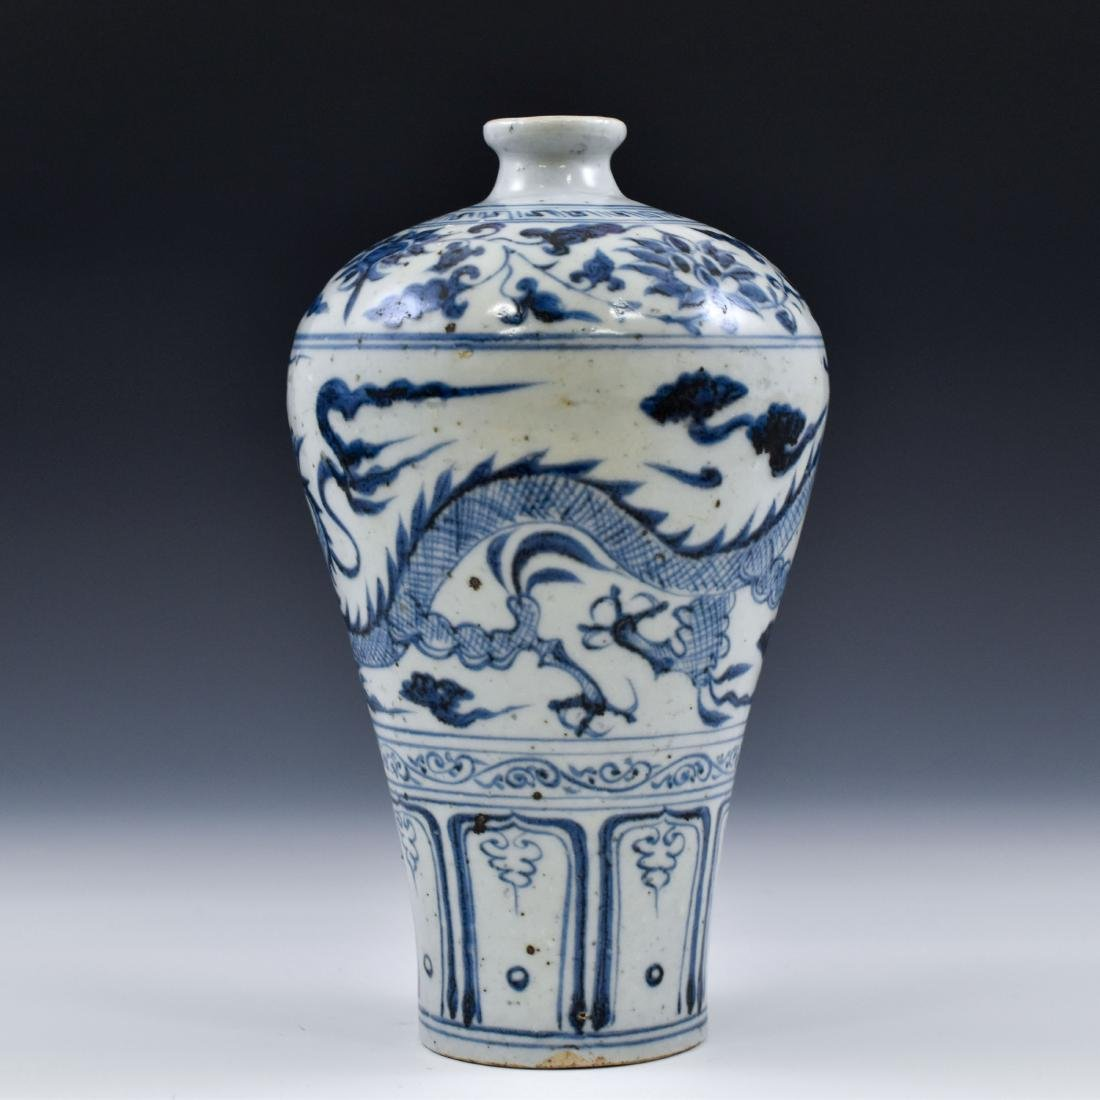 YUAN CHINESE BLUE & WHITE DRAGON MEIPING VASE - 4